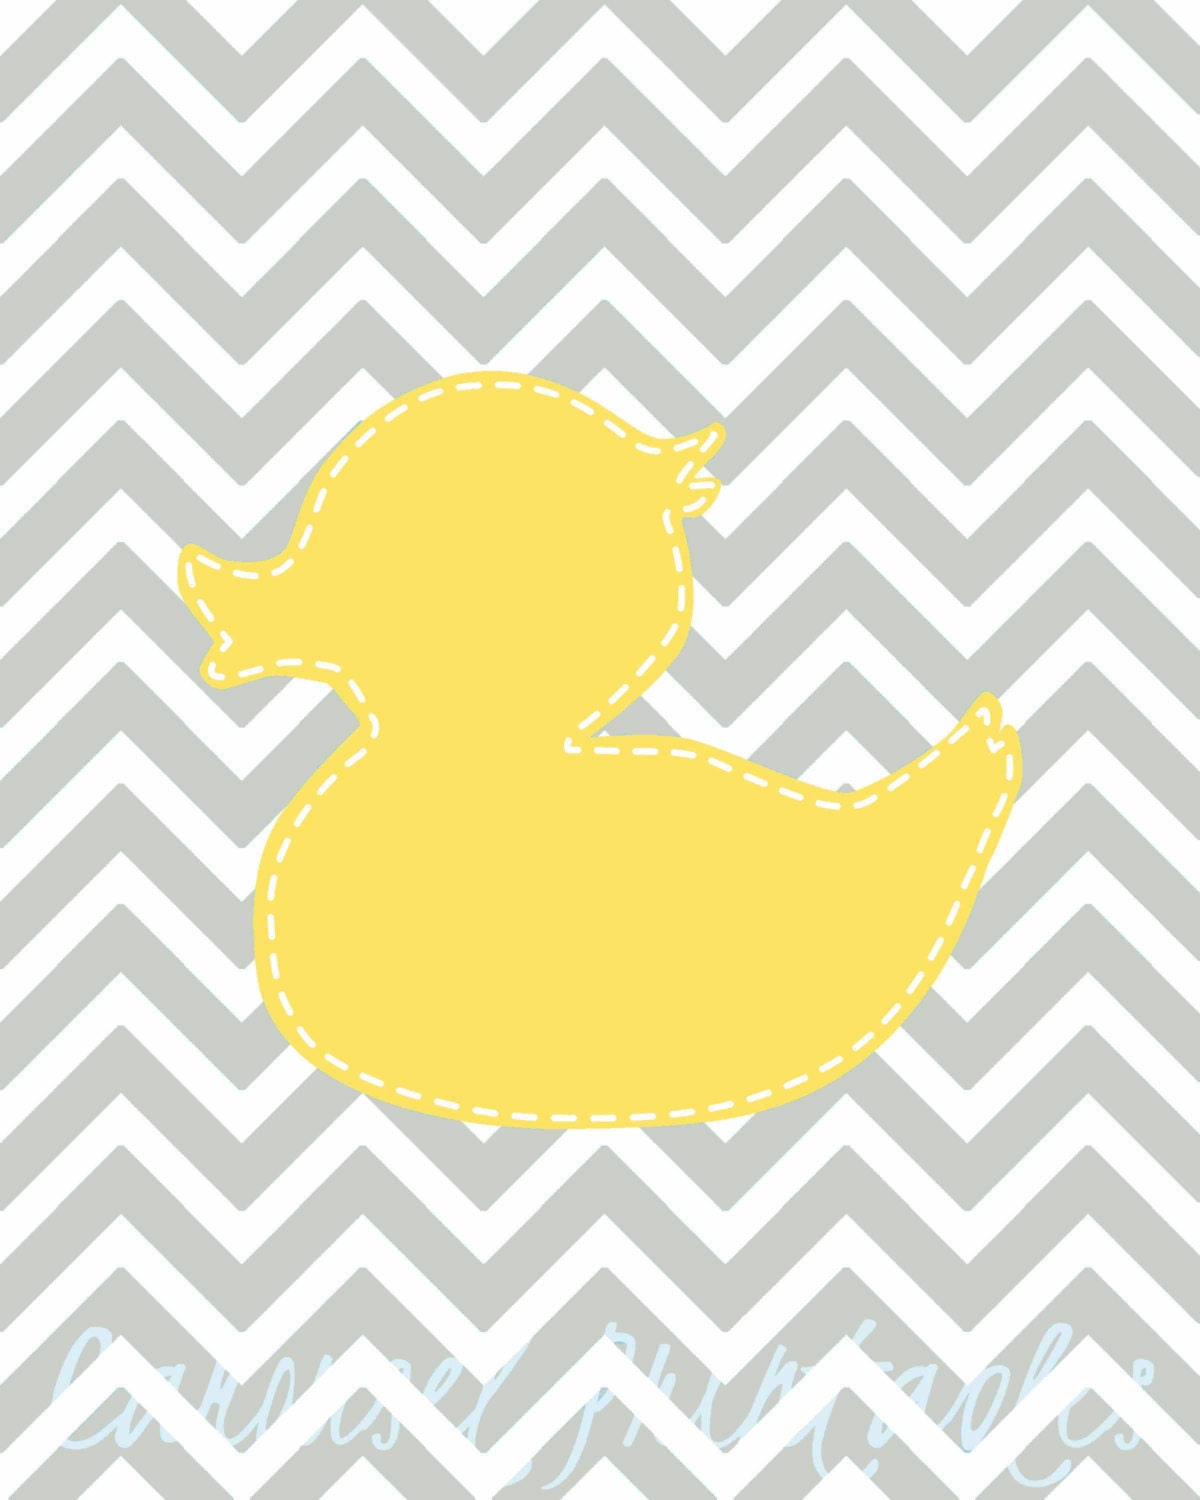 Delighted Rubber Duck Wall Art Ideas - Wall Art Ideas - dochista.info